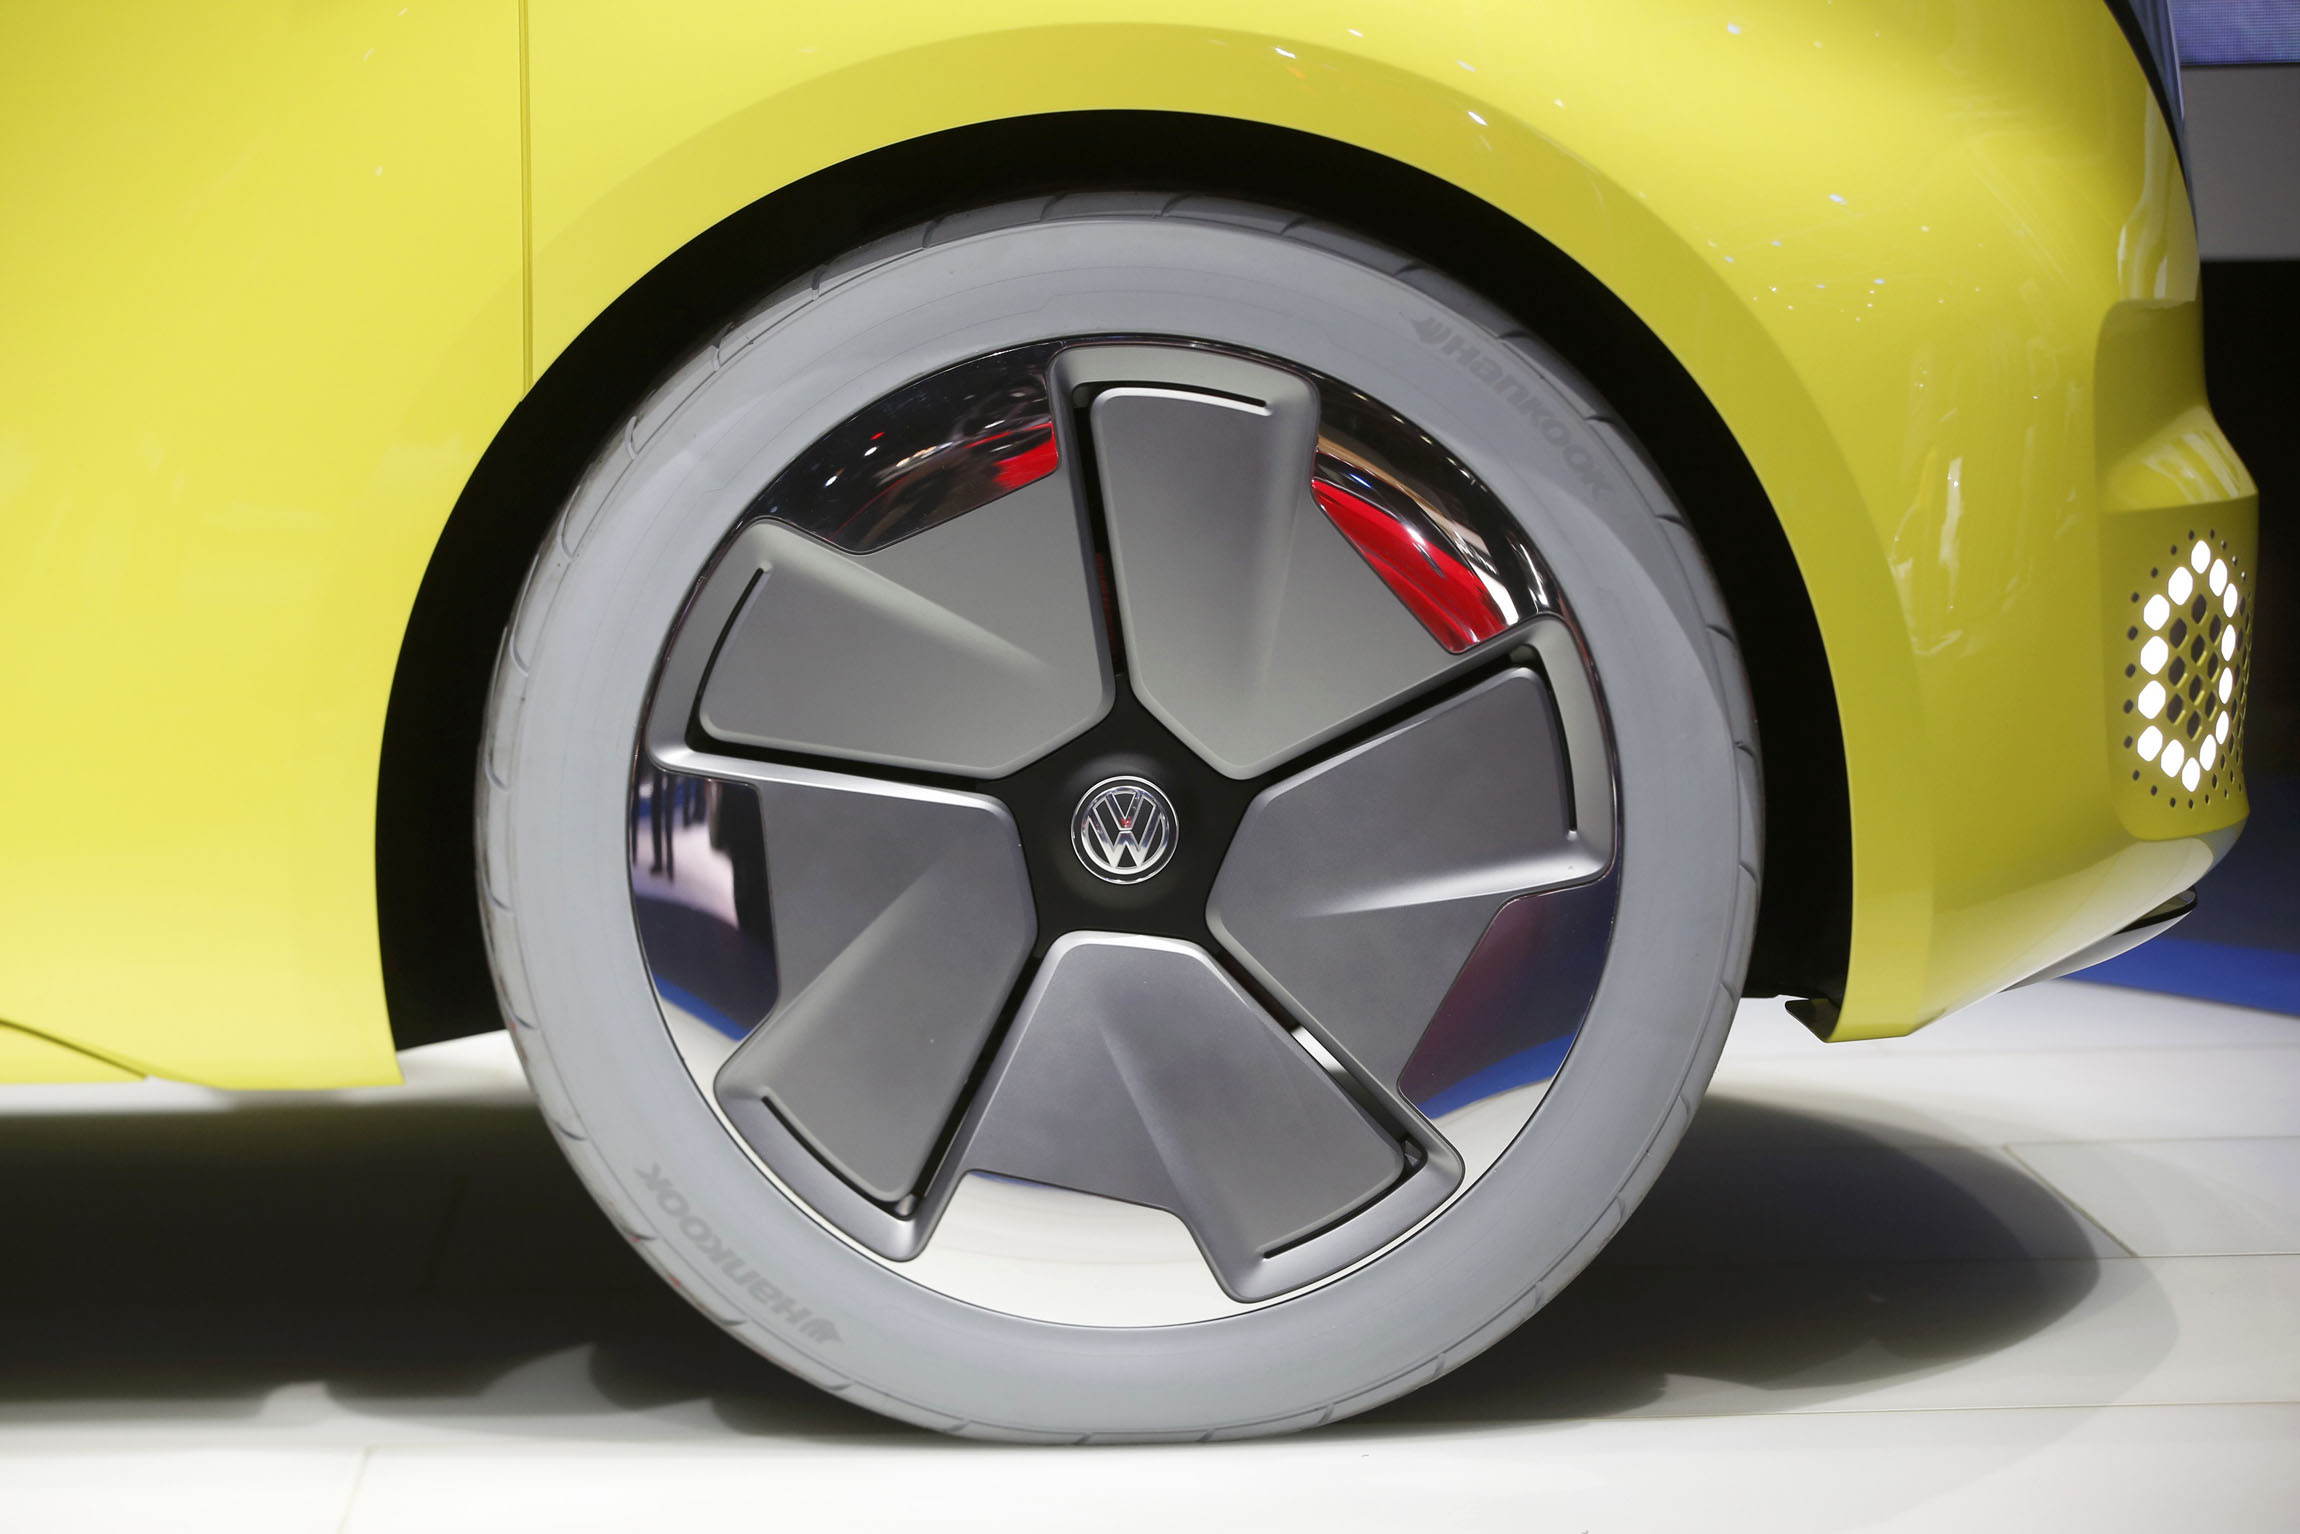 Detail view of a wheel and tire on a Volkswagen I.D. Buzz electric concept vehicle during the North American International Auto Show in Detroit